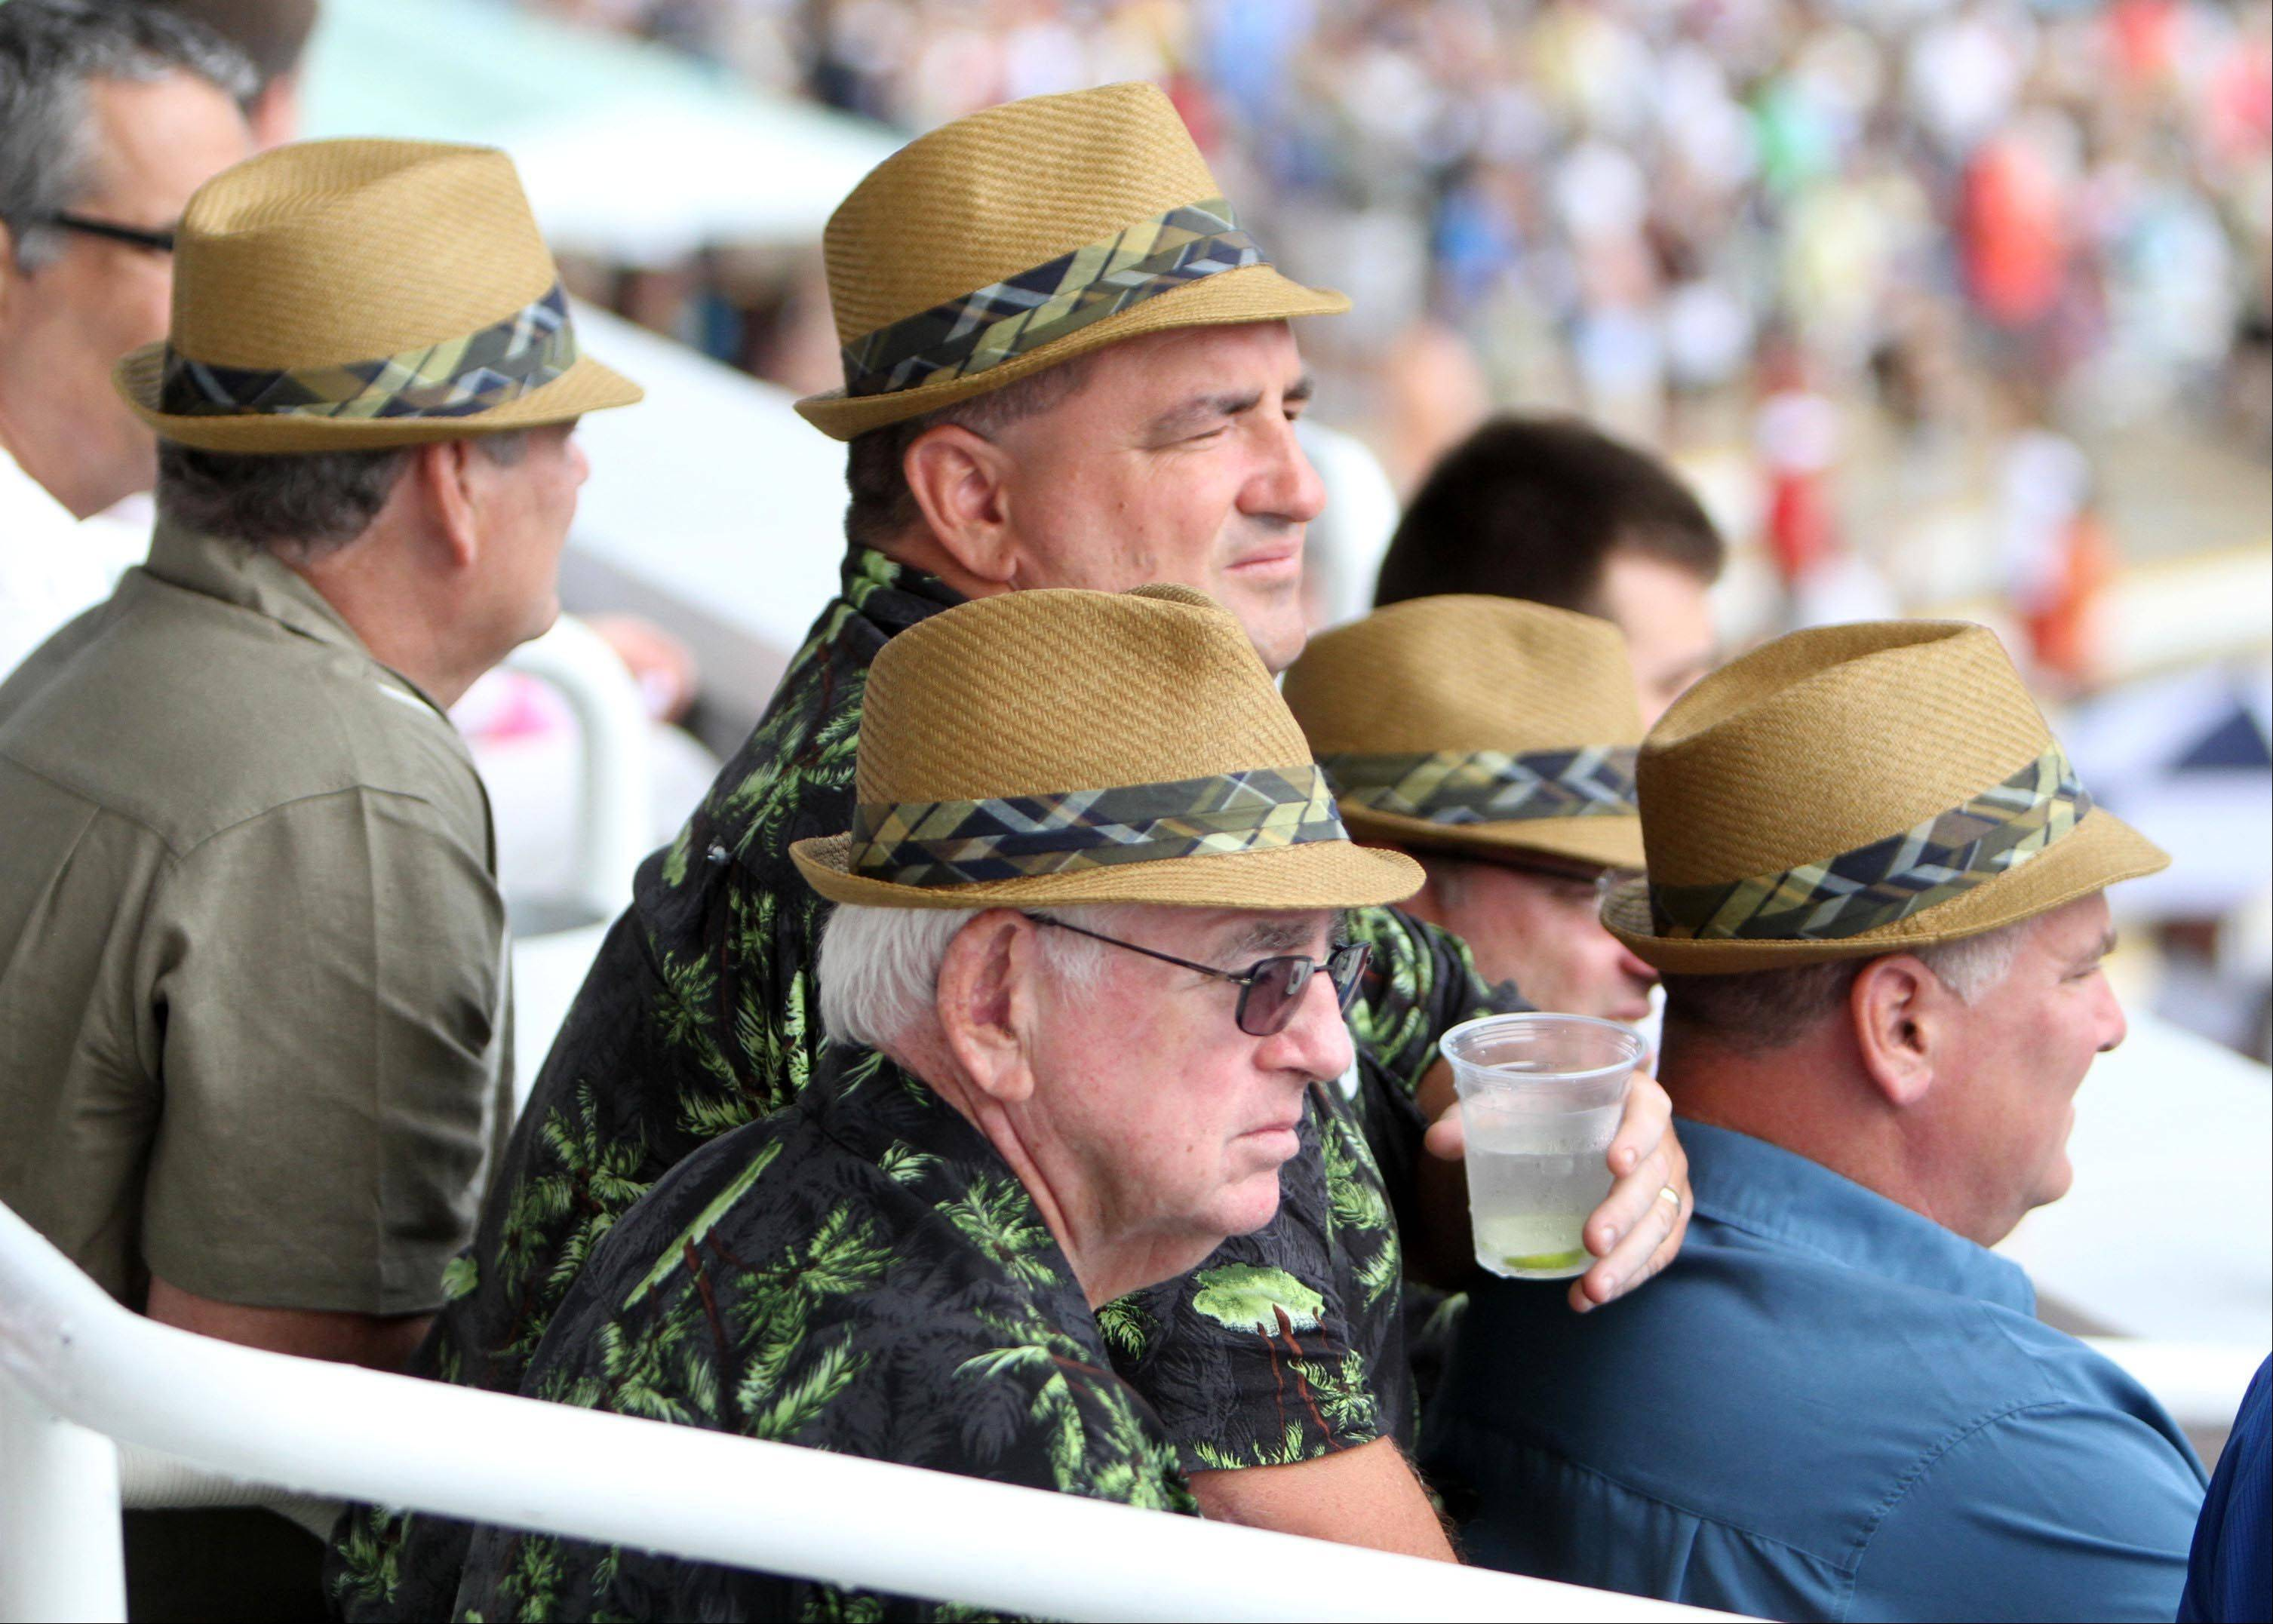 A group of men from Detroit all wore the same fedora hat to the Arlington Million at Arlington Park on Saturday.